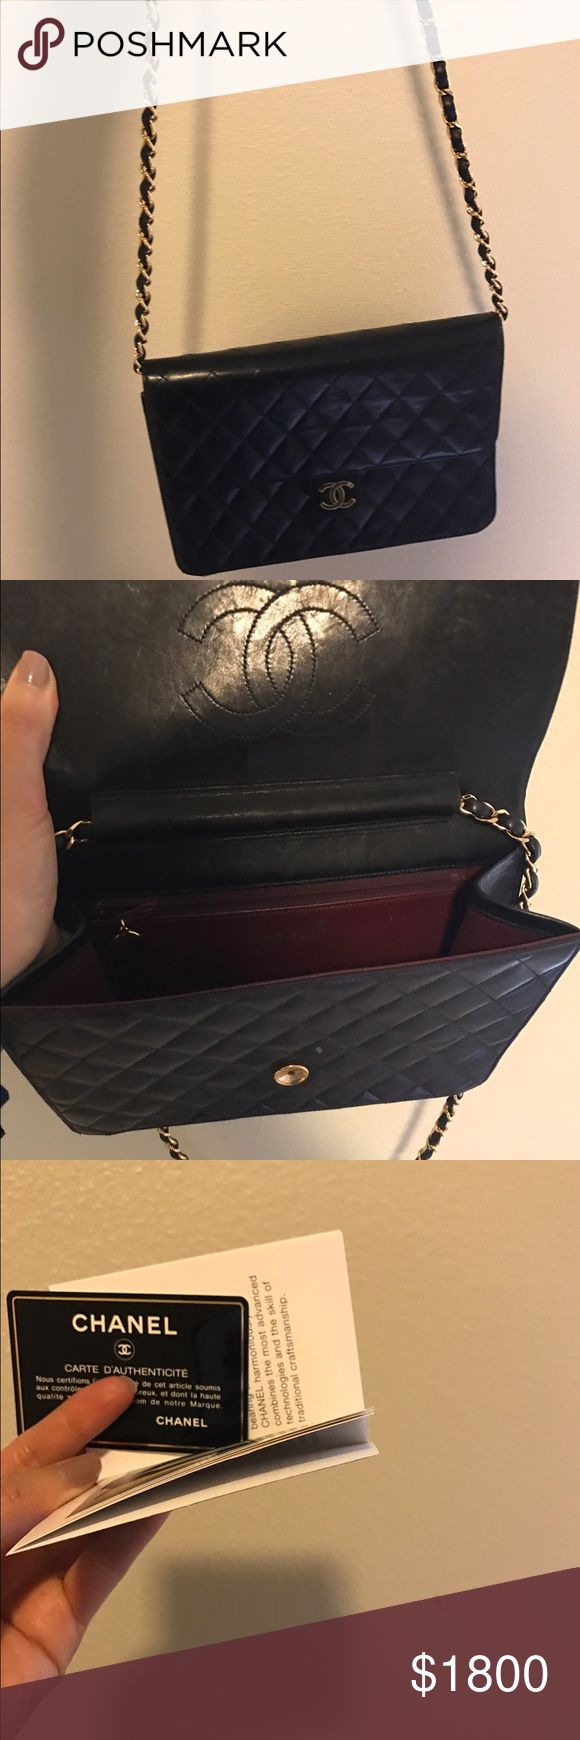 Medium Chanel single flap lamb skin Good condition and classic Chanel bag. Comes with carte d'authenticite and dust bag. Classic that never goes out of style and can be passed into generations. CHANEL Bags